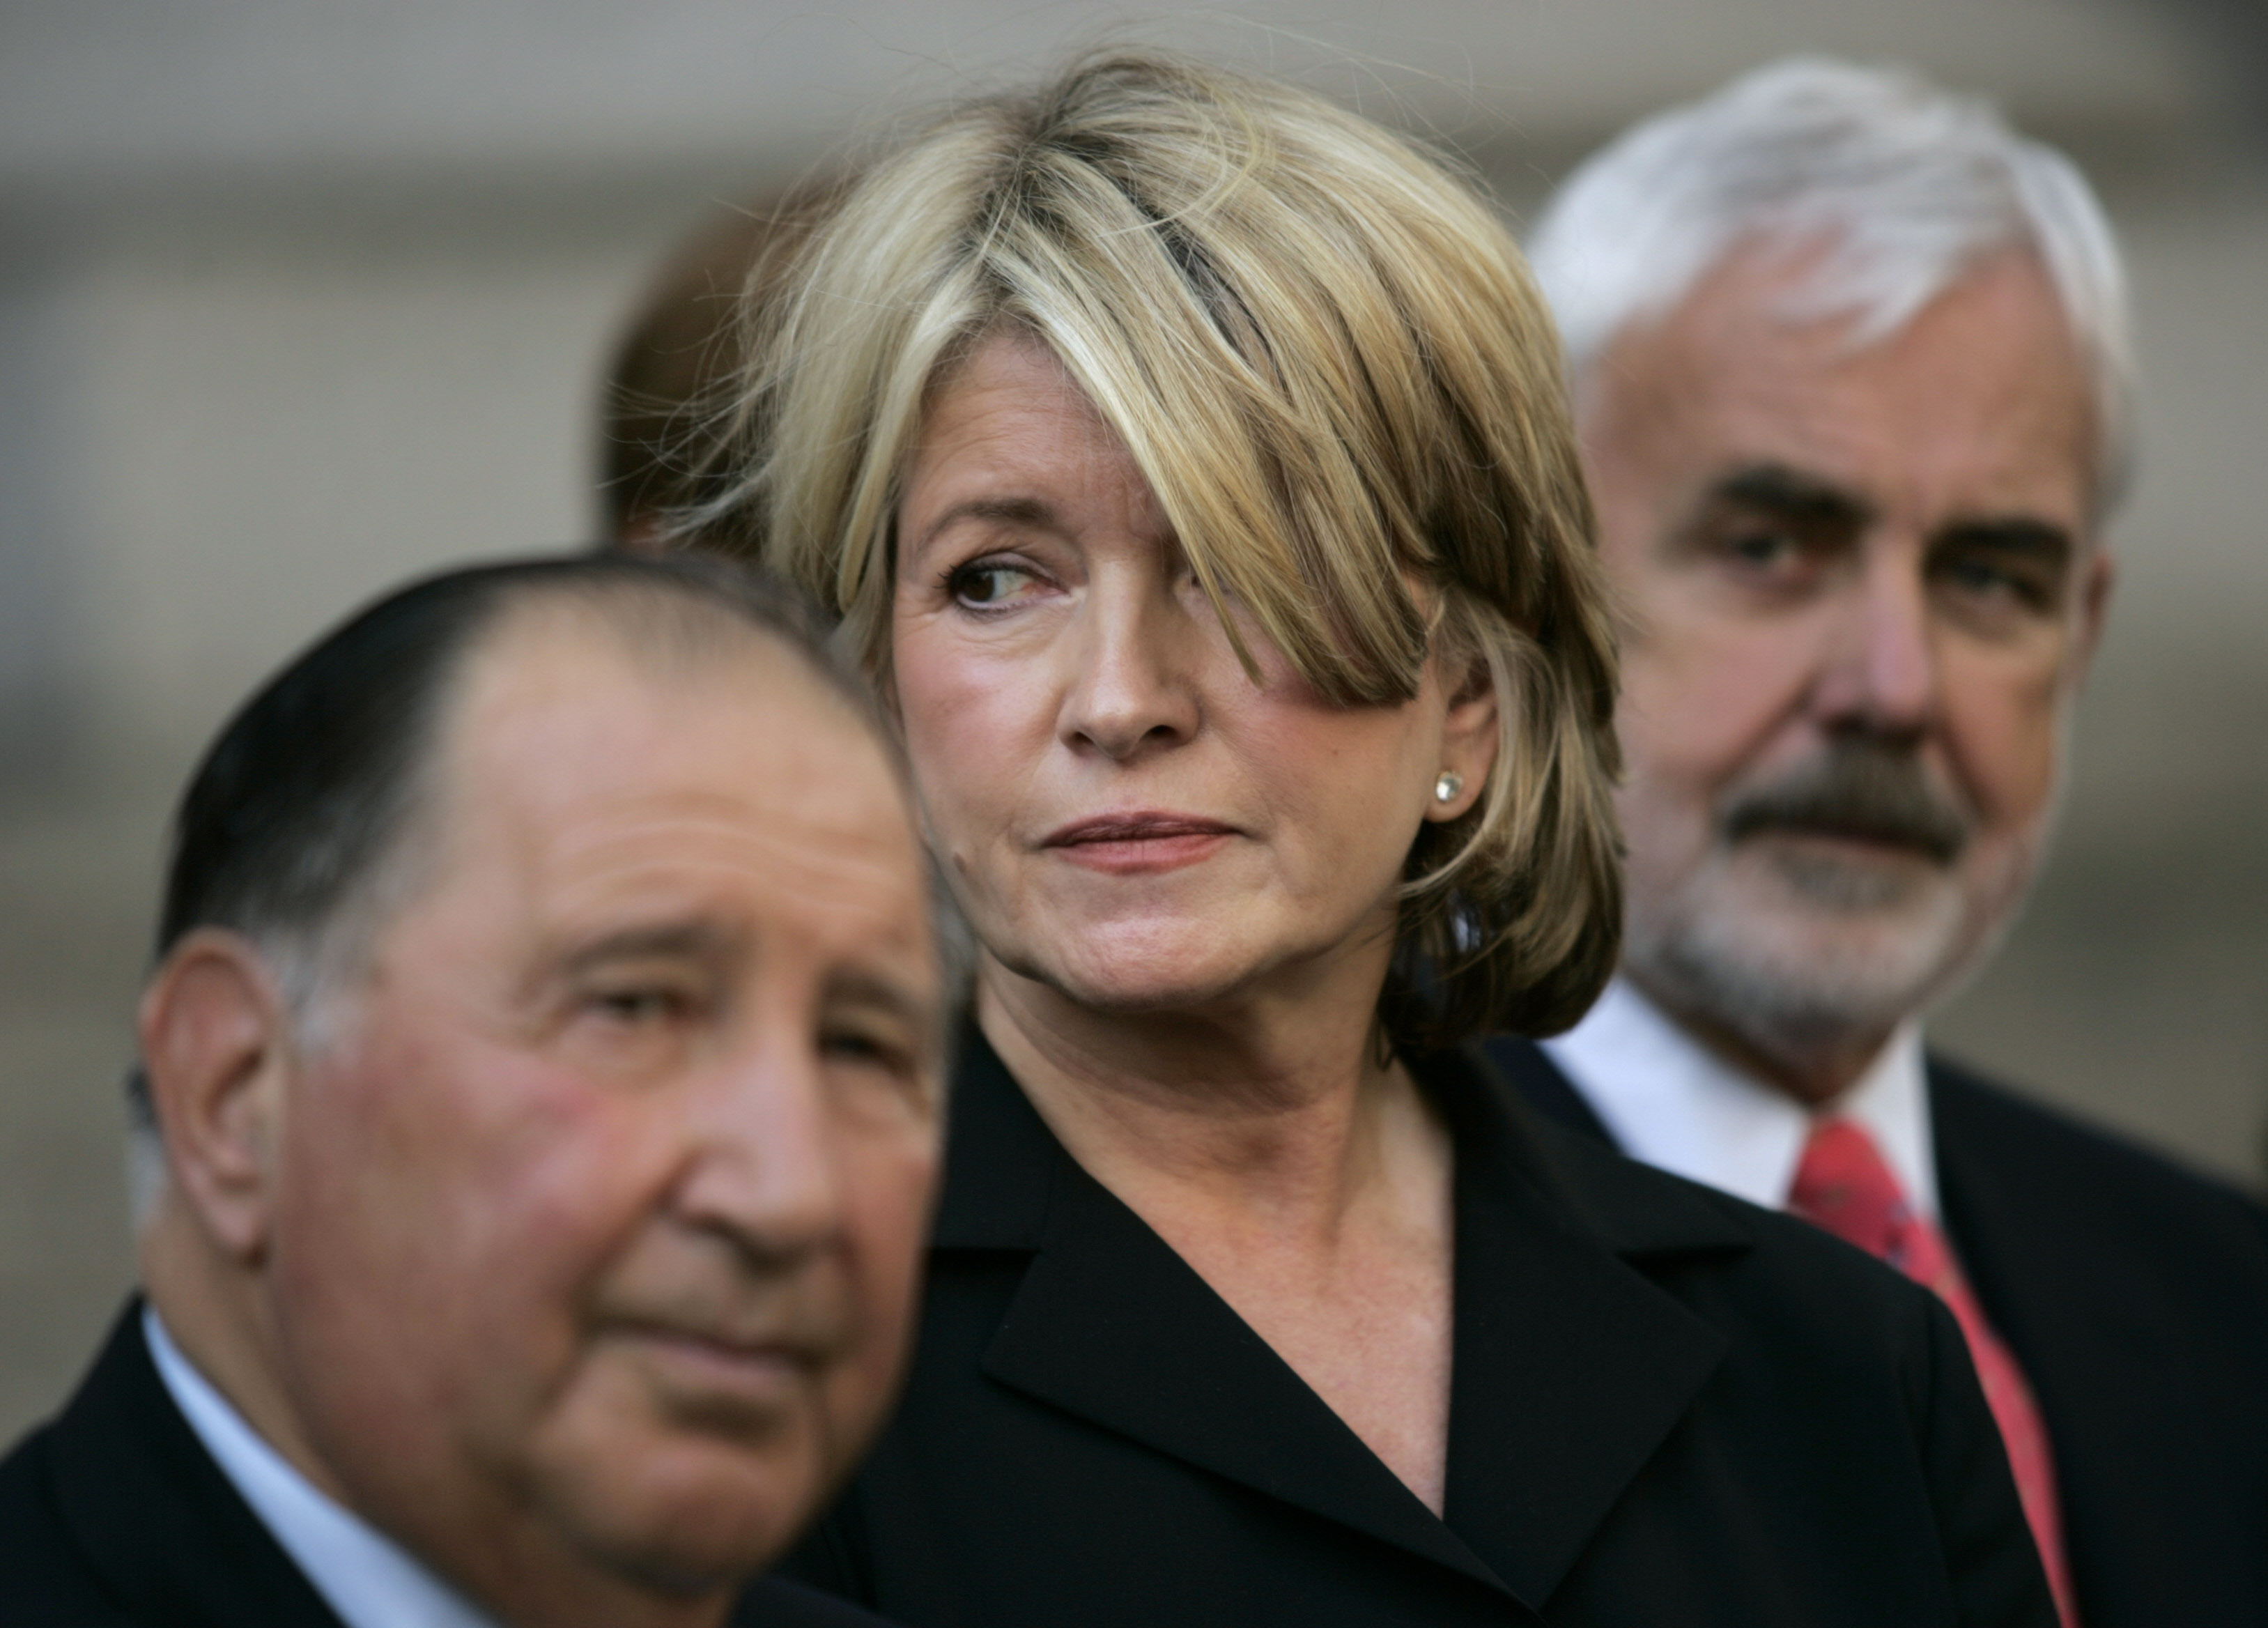 Martha Stewart is flanked by her lawyers Robert Morvillo, left, and John Tigue, outside Manhattan federal court after her sentencing, in New York Friday July 16, 2004. Stewart was sentenced Friday to five months in prison and five months of home confinement for lying about a stock sale. (AP Photo/John Marshal Mantel)